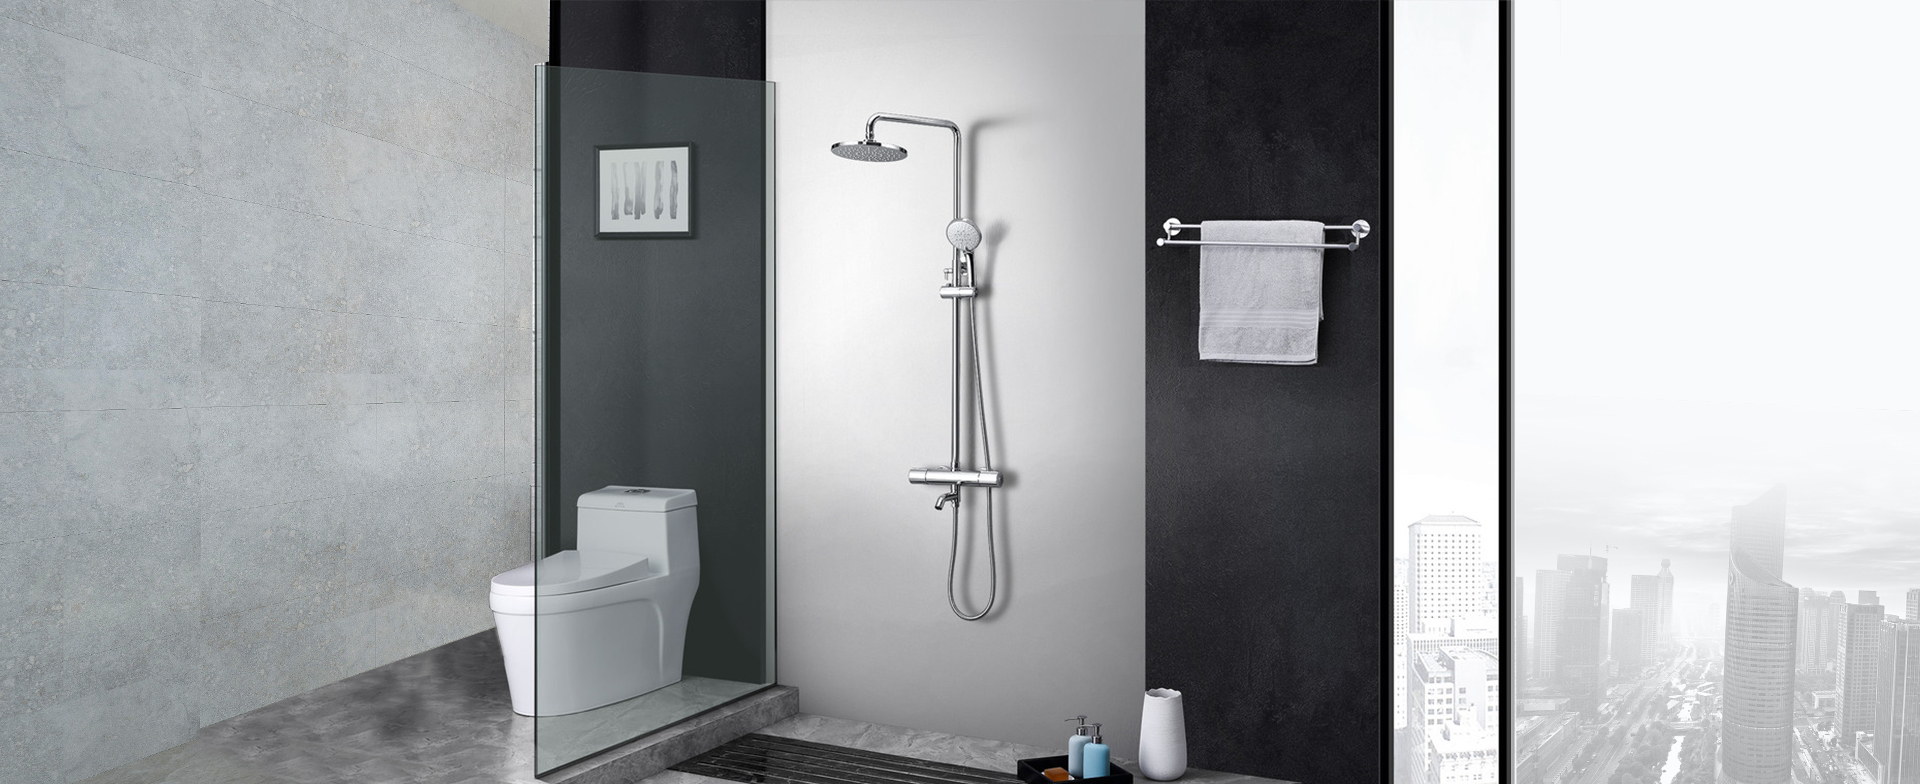 Several ways to clean the shower head